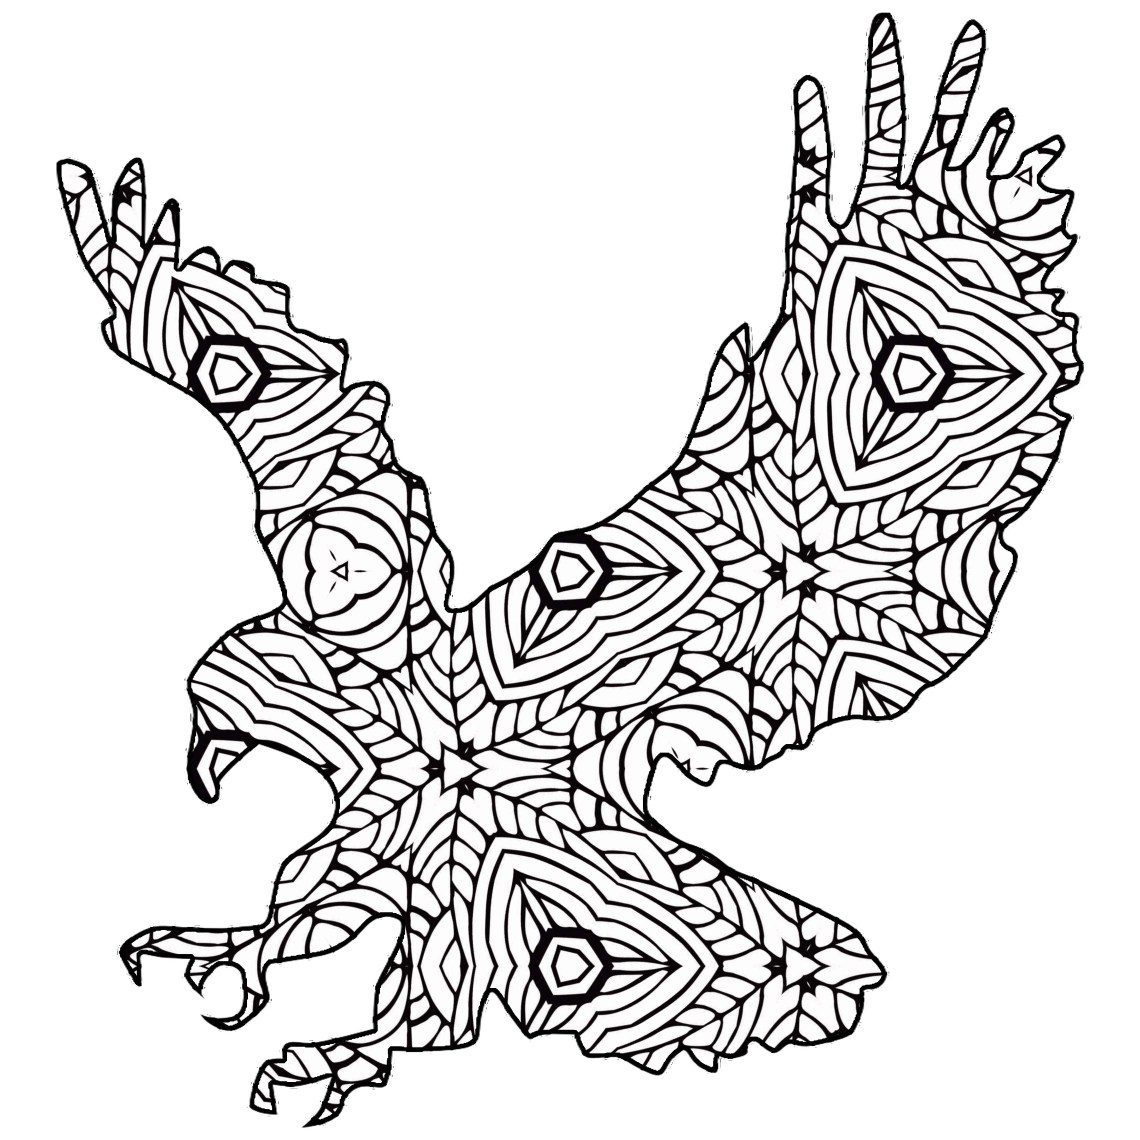 30 Free Coloring Pages /// A Geometric Animal Coloring ... | coloring pages printable animals